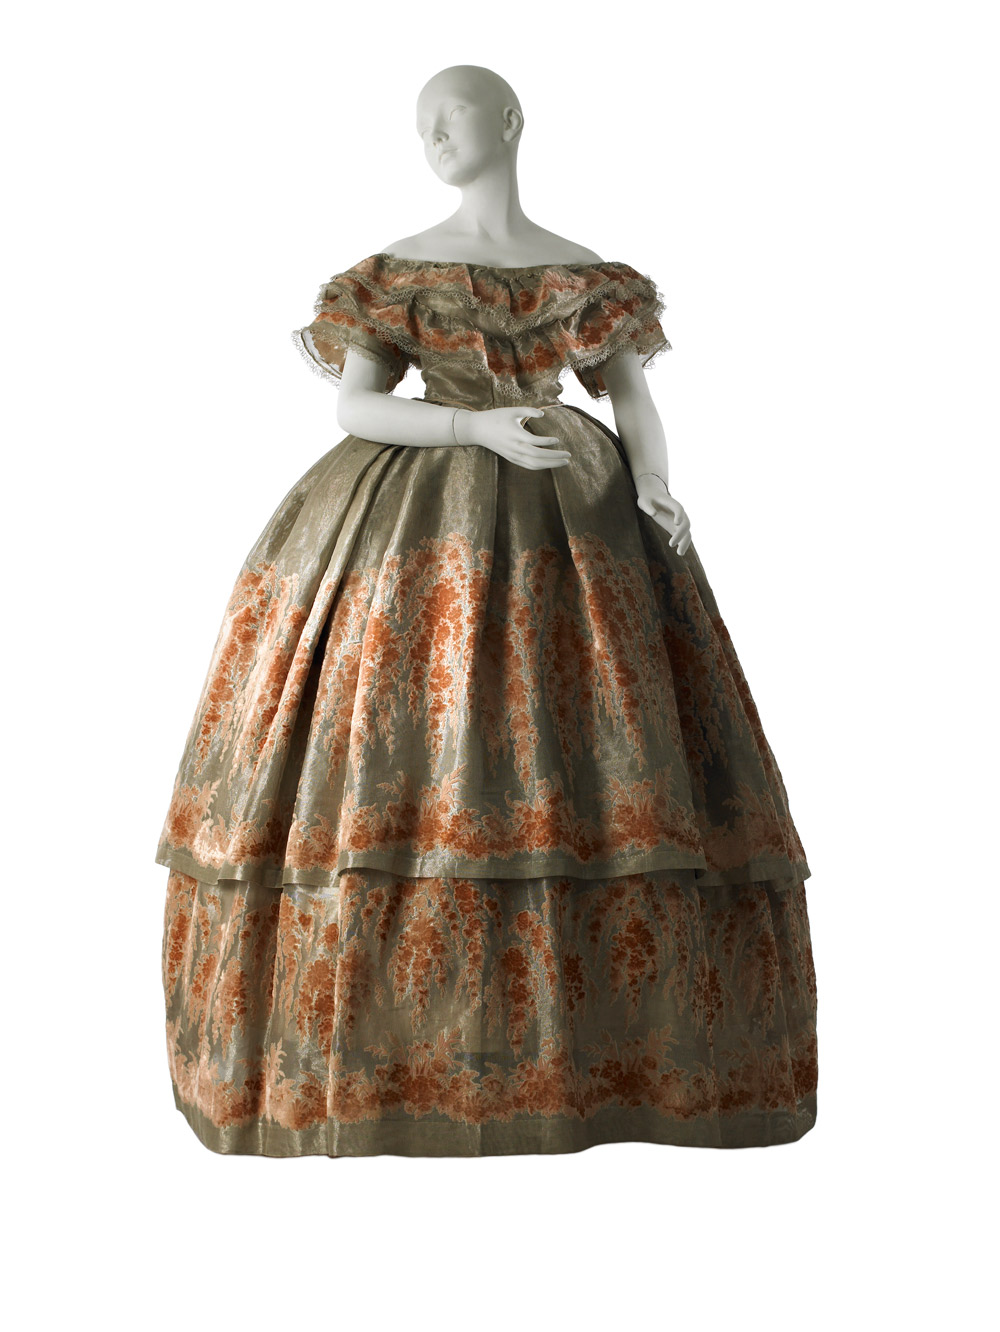 Ball Gown, 1860.